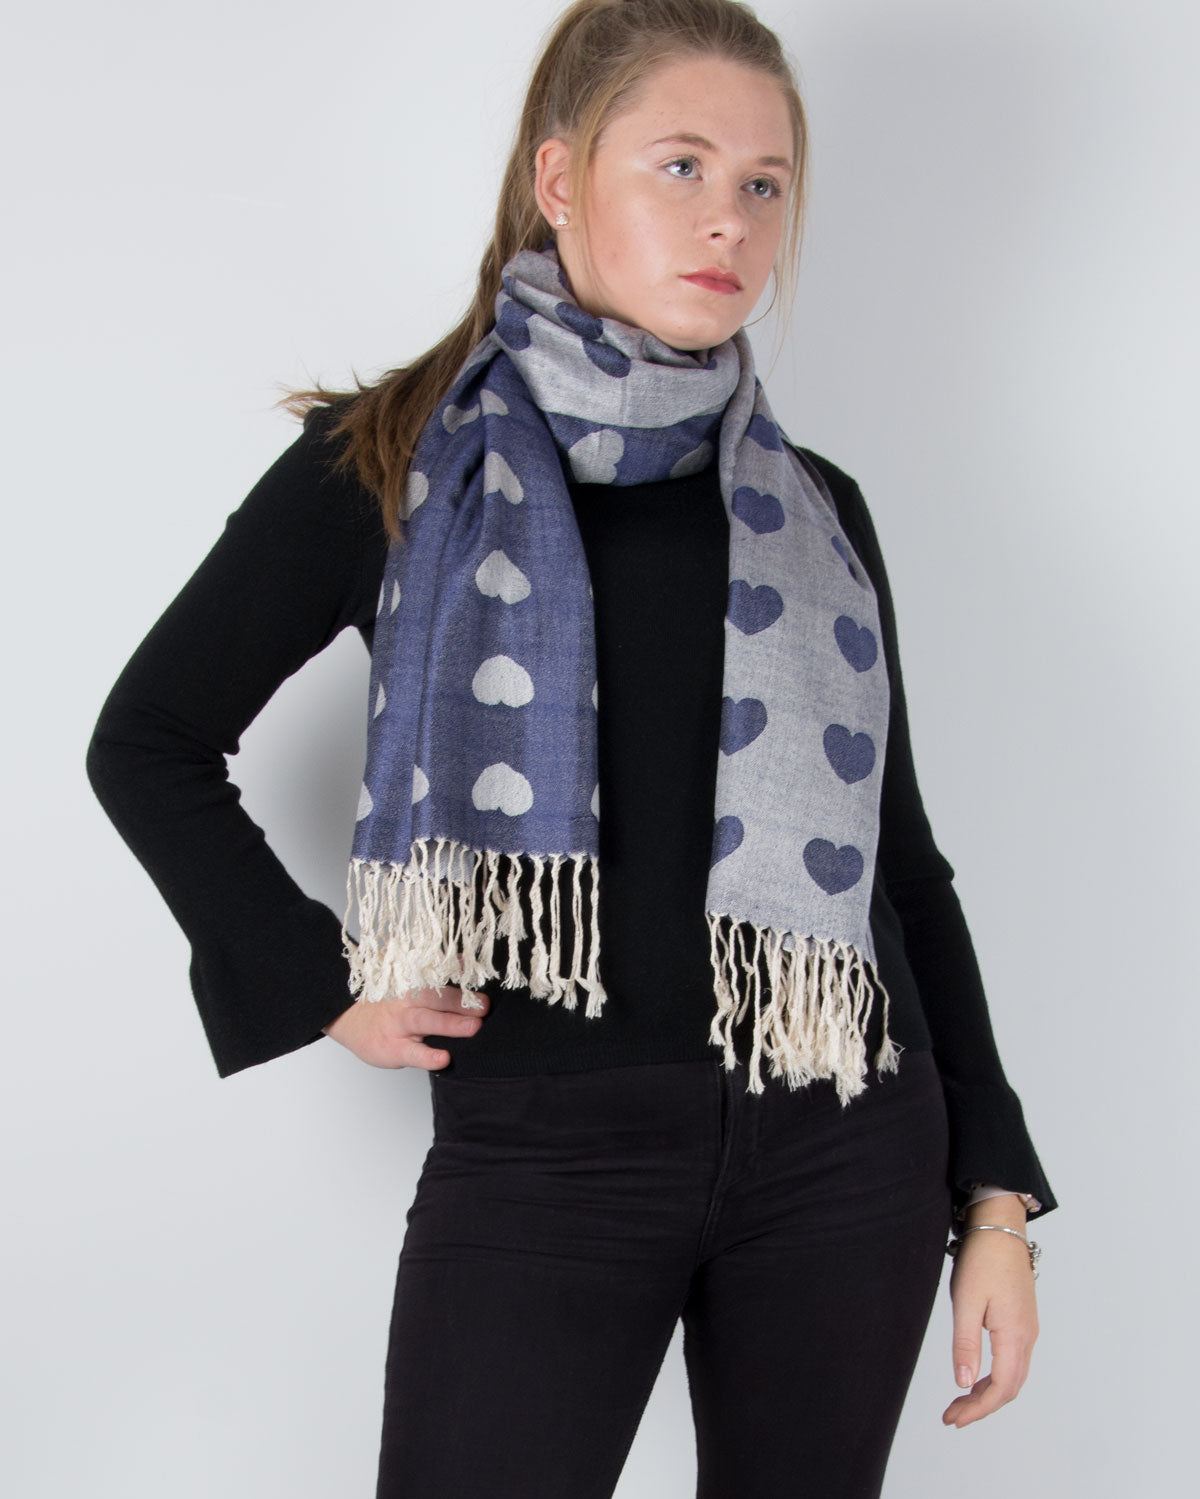 an image showing a heart print pashmina